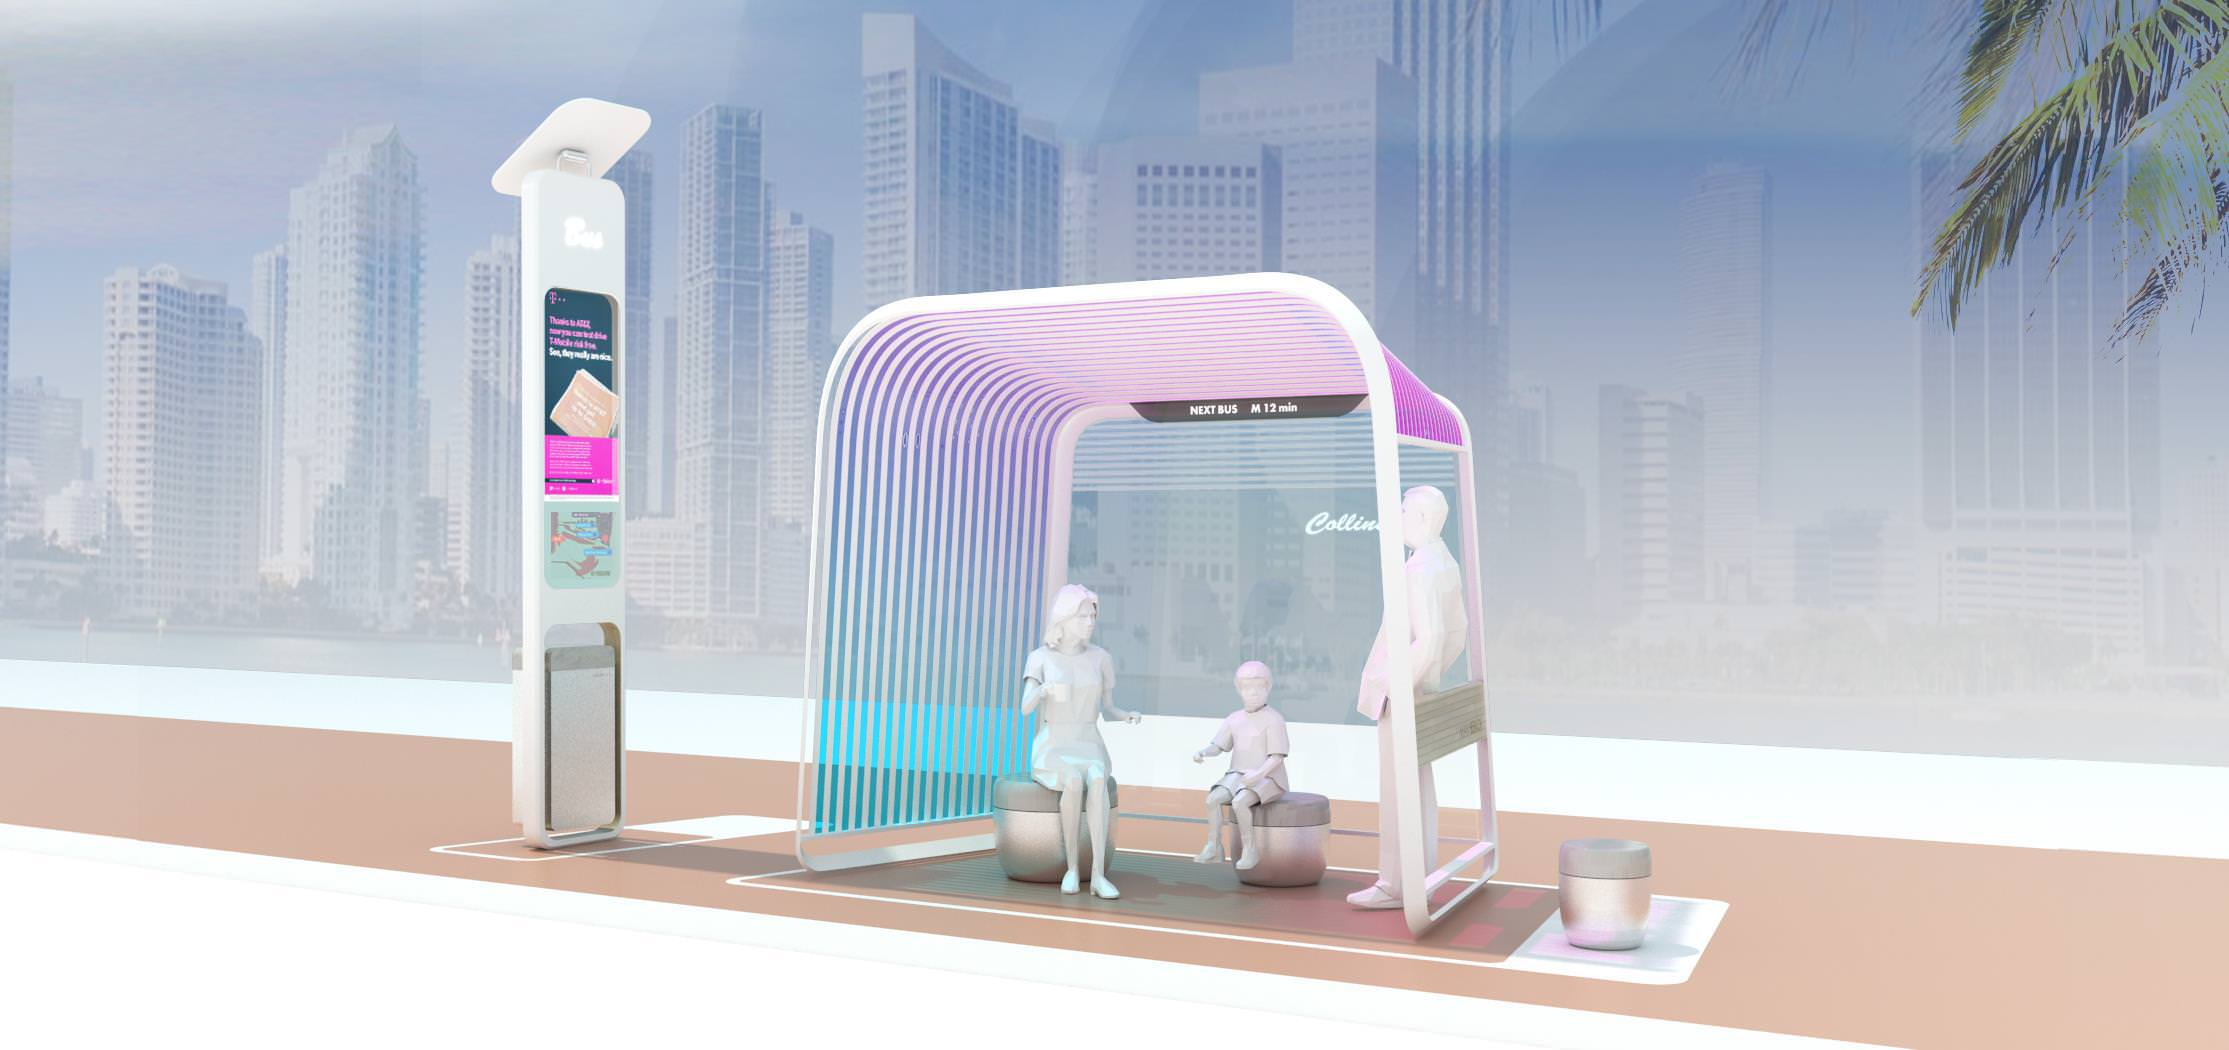 Miami Beach officials are considering replacing nearly 300 bus stops throughout the city with a new design.